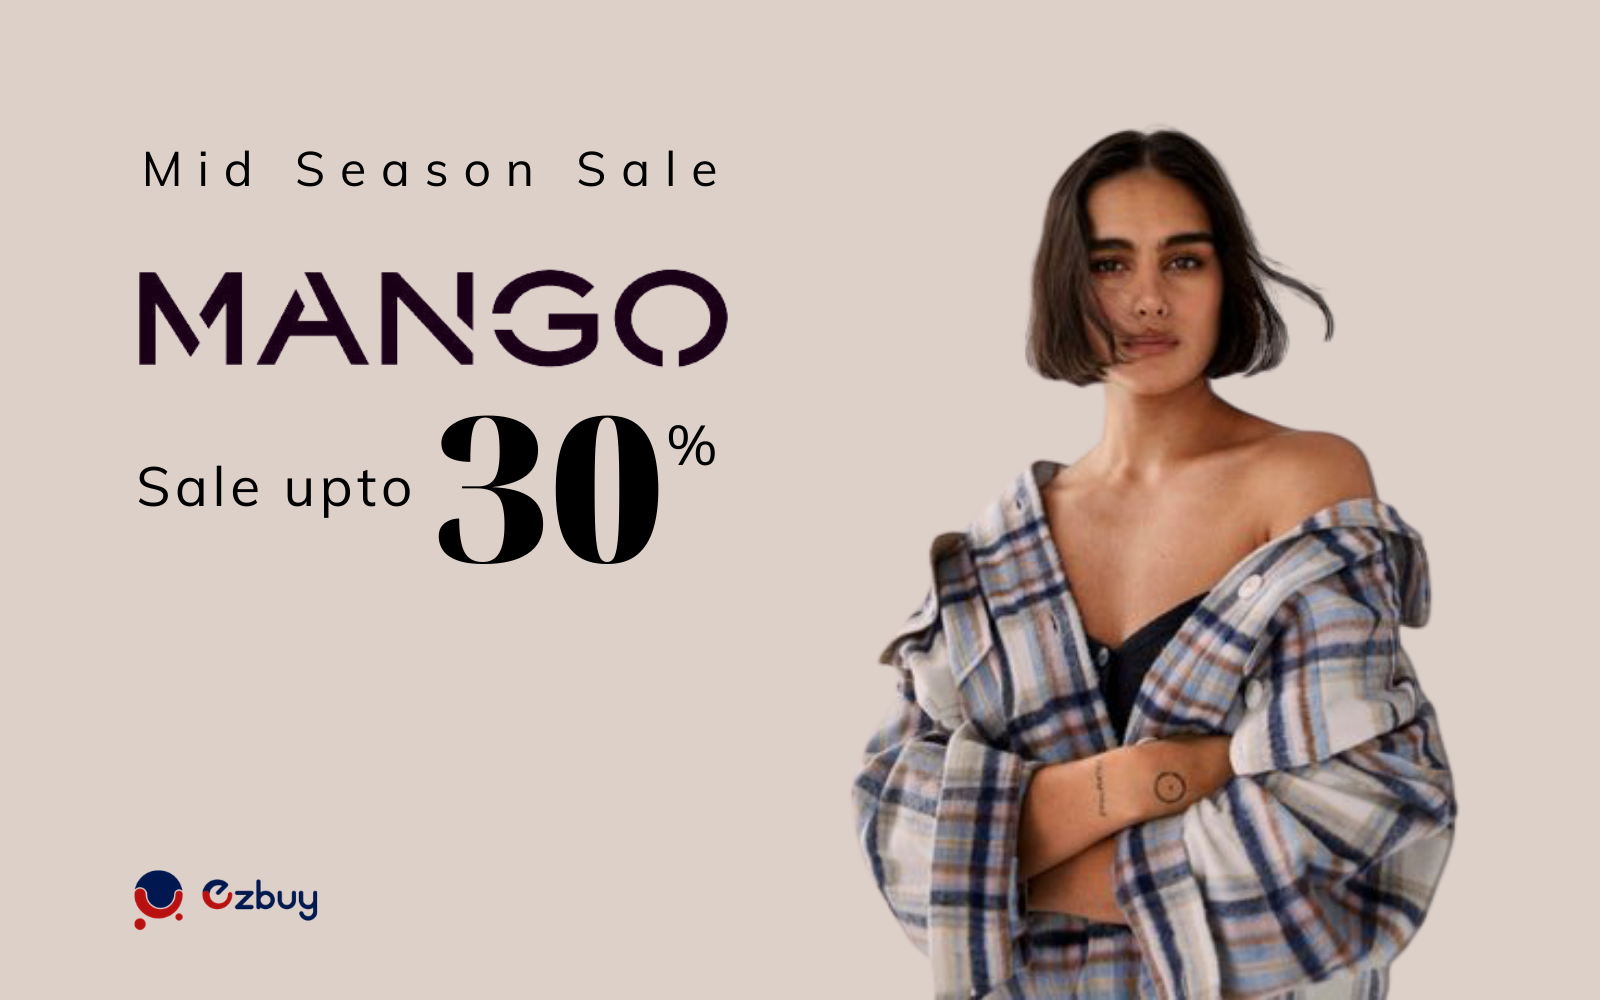 Mango is opening a great summer sale - Up to 30% off - Applied until the end of May 31, 2021